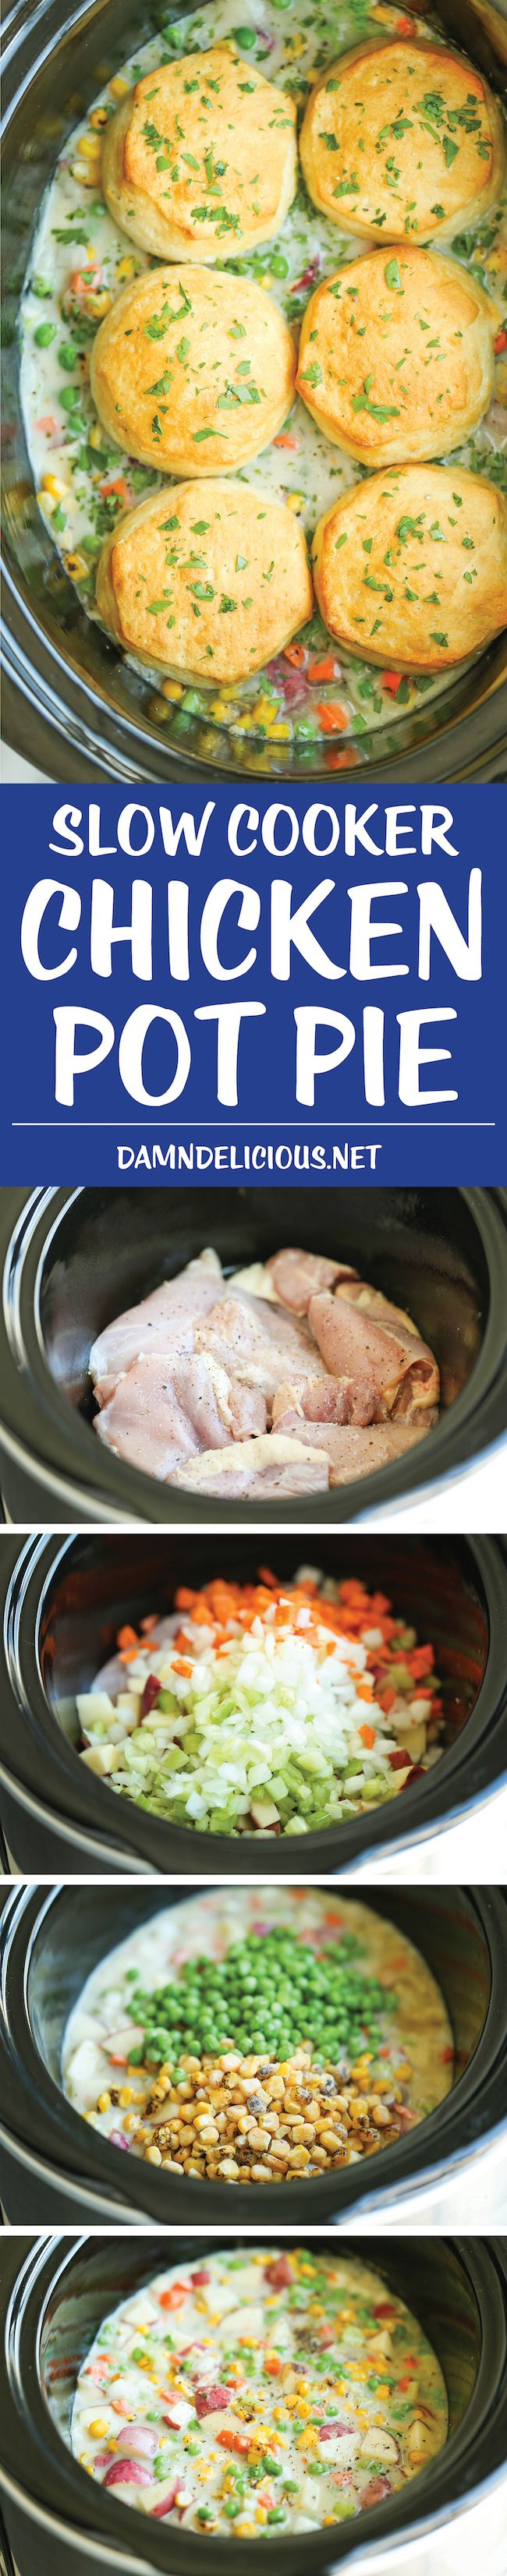 Slow Cooker Chicken Pot Pie – The easiest pot pie recipe ever made right in the crockpot from scratch – no condensed cream of